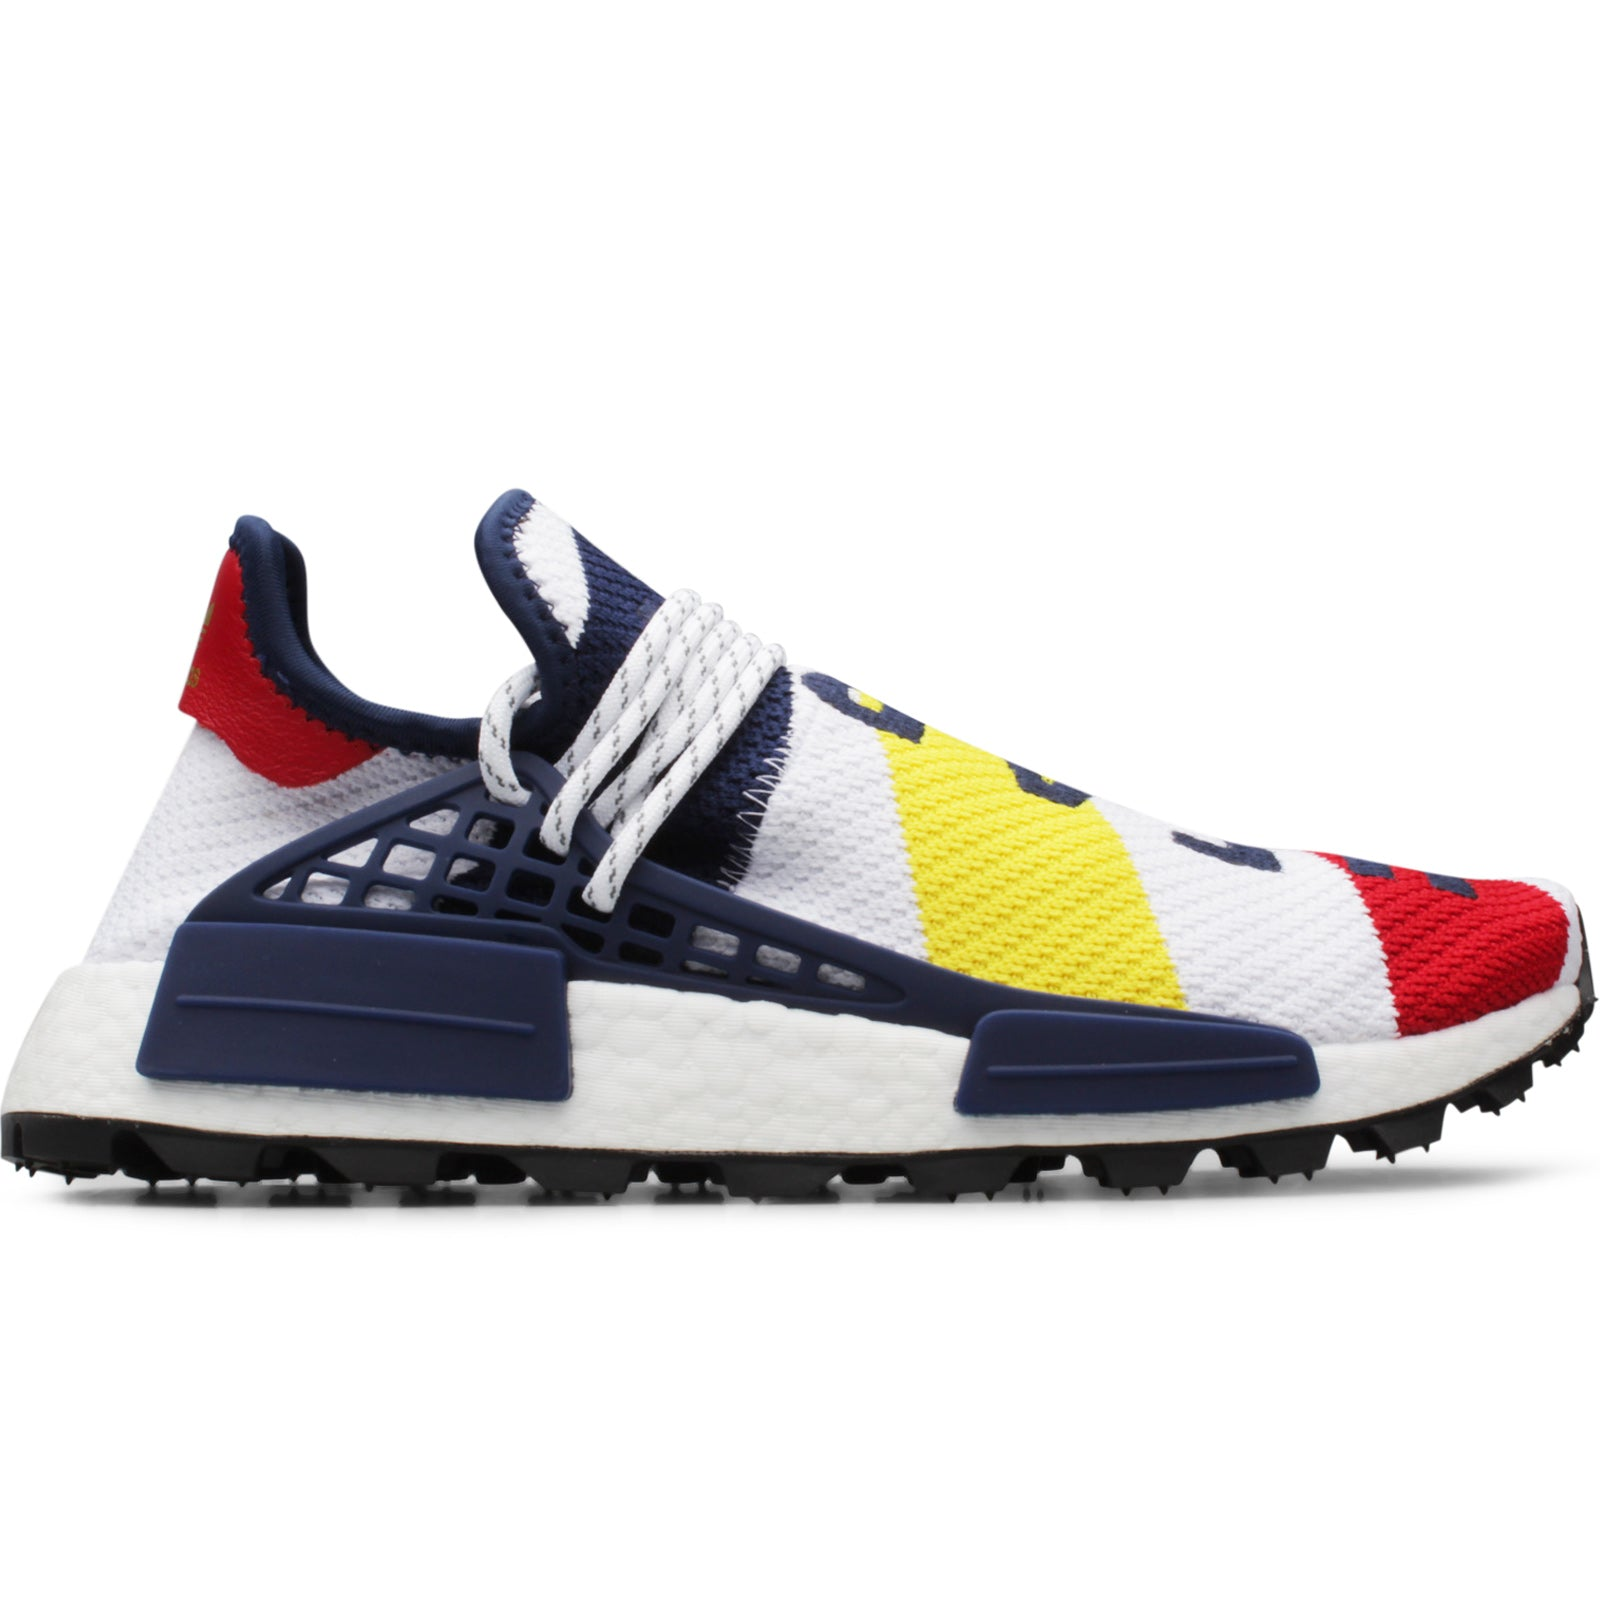 f8097a92f9326 Stitched within the Hu NMD s instantly recognisable primeknit upper are  iconic Billionaire Boys Club logo marks